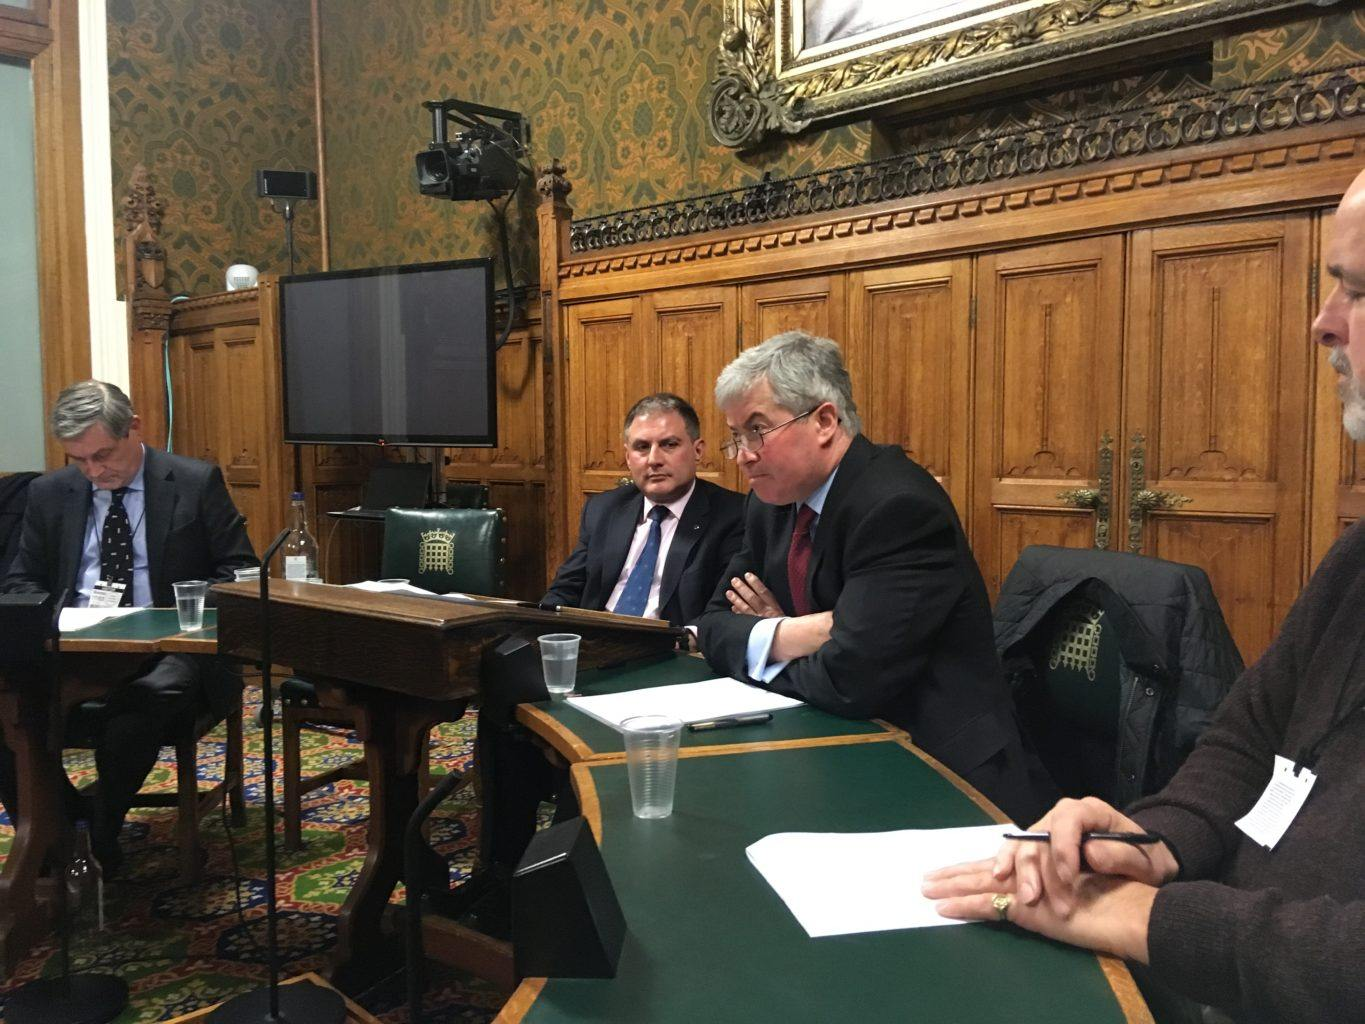 Hosted by Jack Lopresti MP, the event was entitled 'Russian Foreign Policy: Threats and Scenarios'. It brought together Professor Christopher Coker from the Department of International Relations at the London School of Economics and retired General Sir Ri